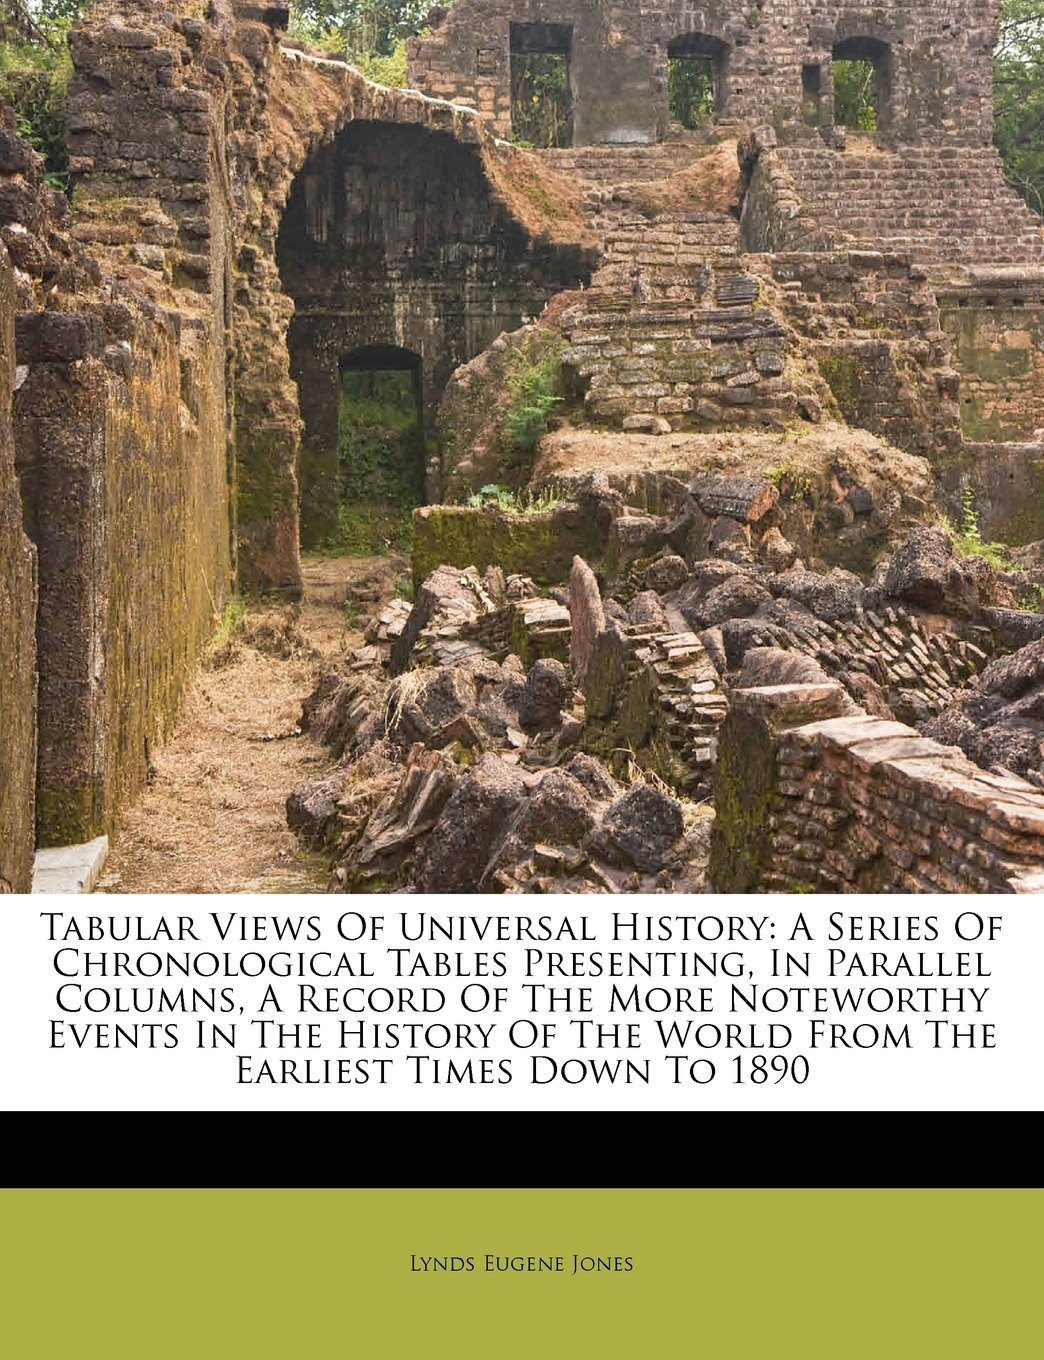 Download Tabular Views Of Universal History: A Series Of Chronological Tables Presenting, In Parallel Columns, A Record Of The More Noteworthy Events In The ... World From The Earliest Times Down To 1890 ebook